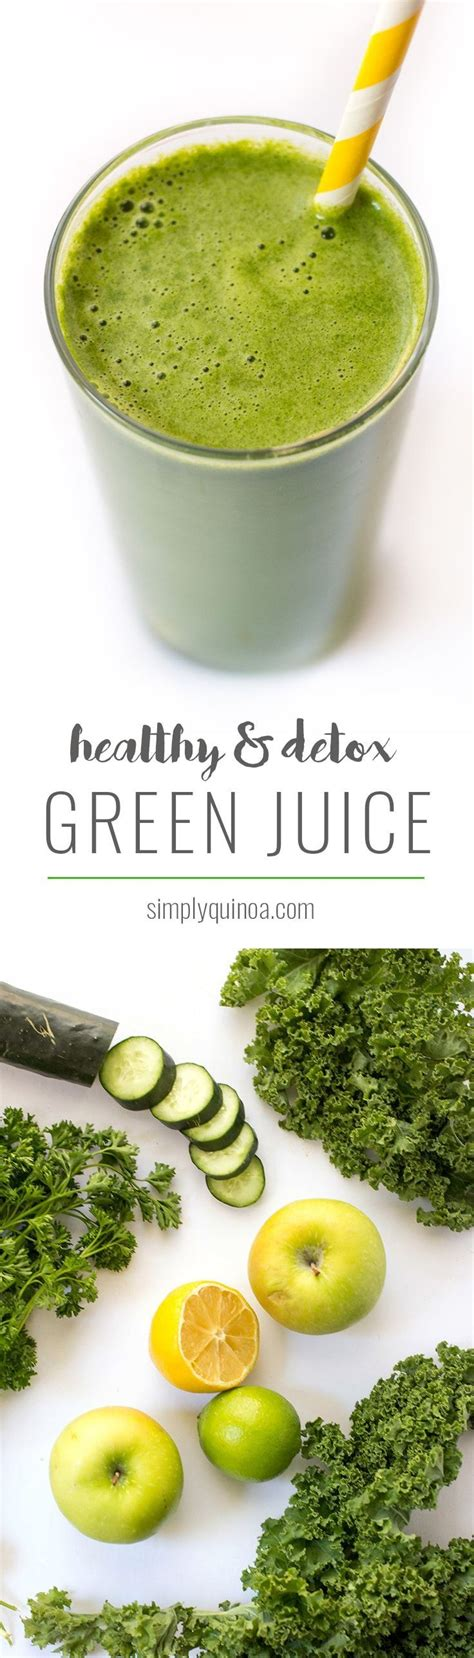 Lemon Kale Protein Detox Smoothie Recipe From Zero Belly Smoothie by 156 Best Protein Shakes Smoothie Recipes Images On